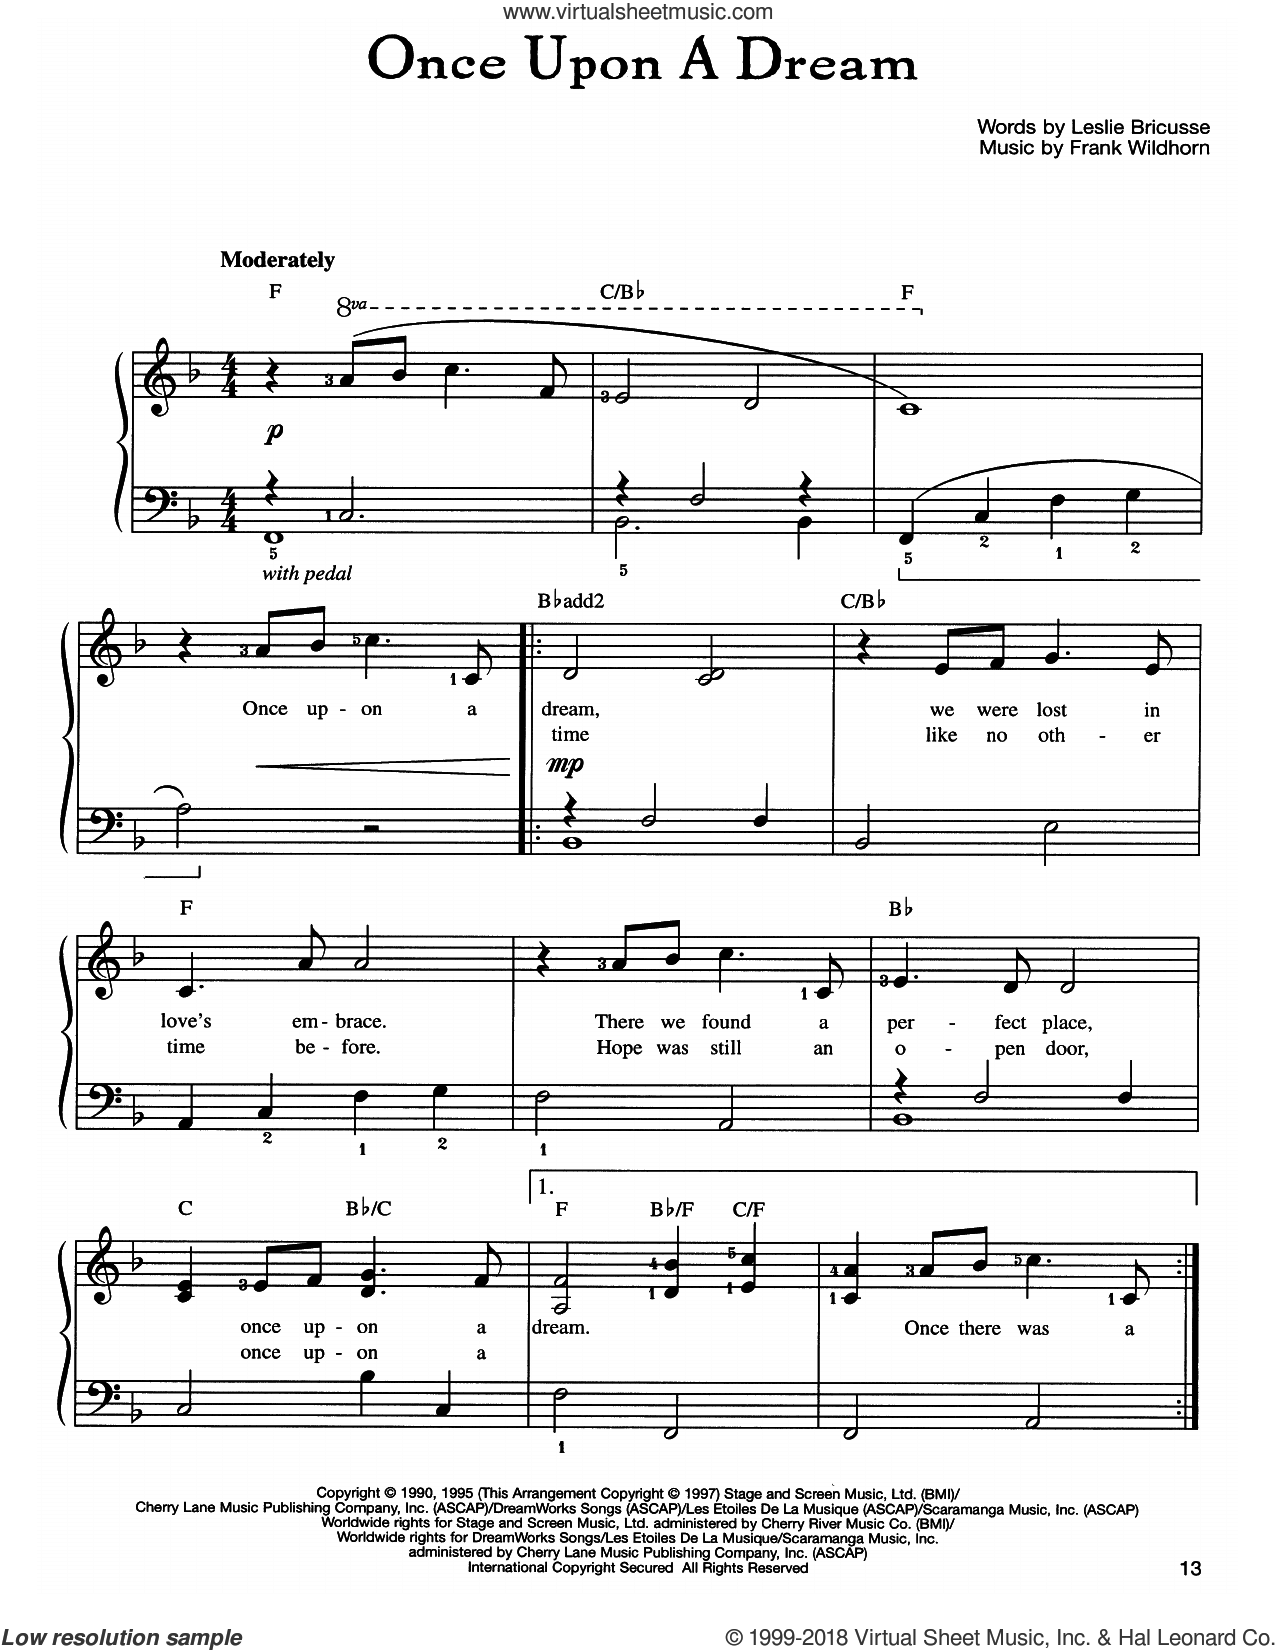 Once Upon A Dream sheet music for piano solo by Frank Wildhorn